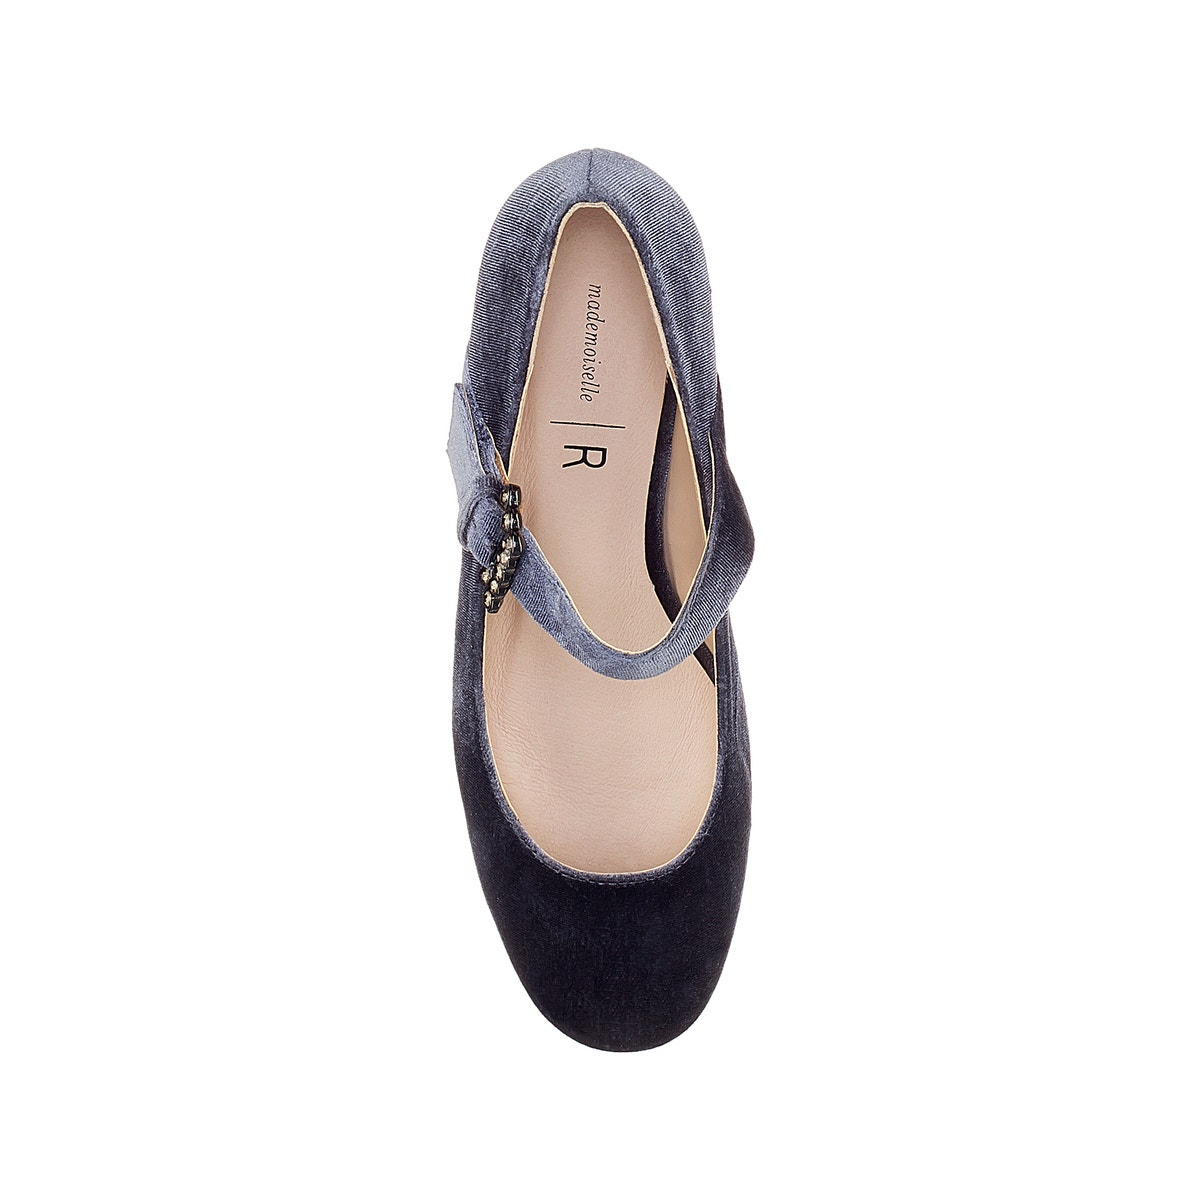 La ROToute Collections Damenschuhe Embellished Dual Strap Ballet Pumps